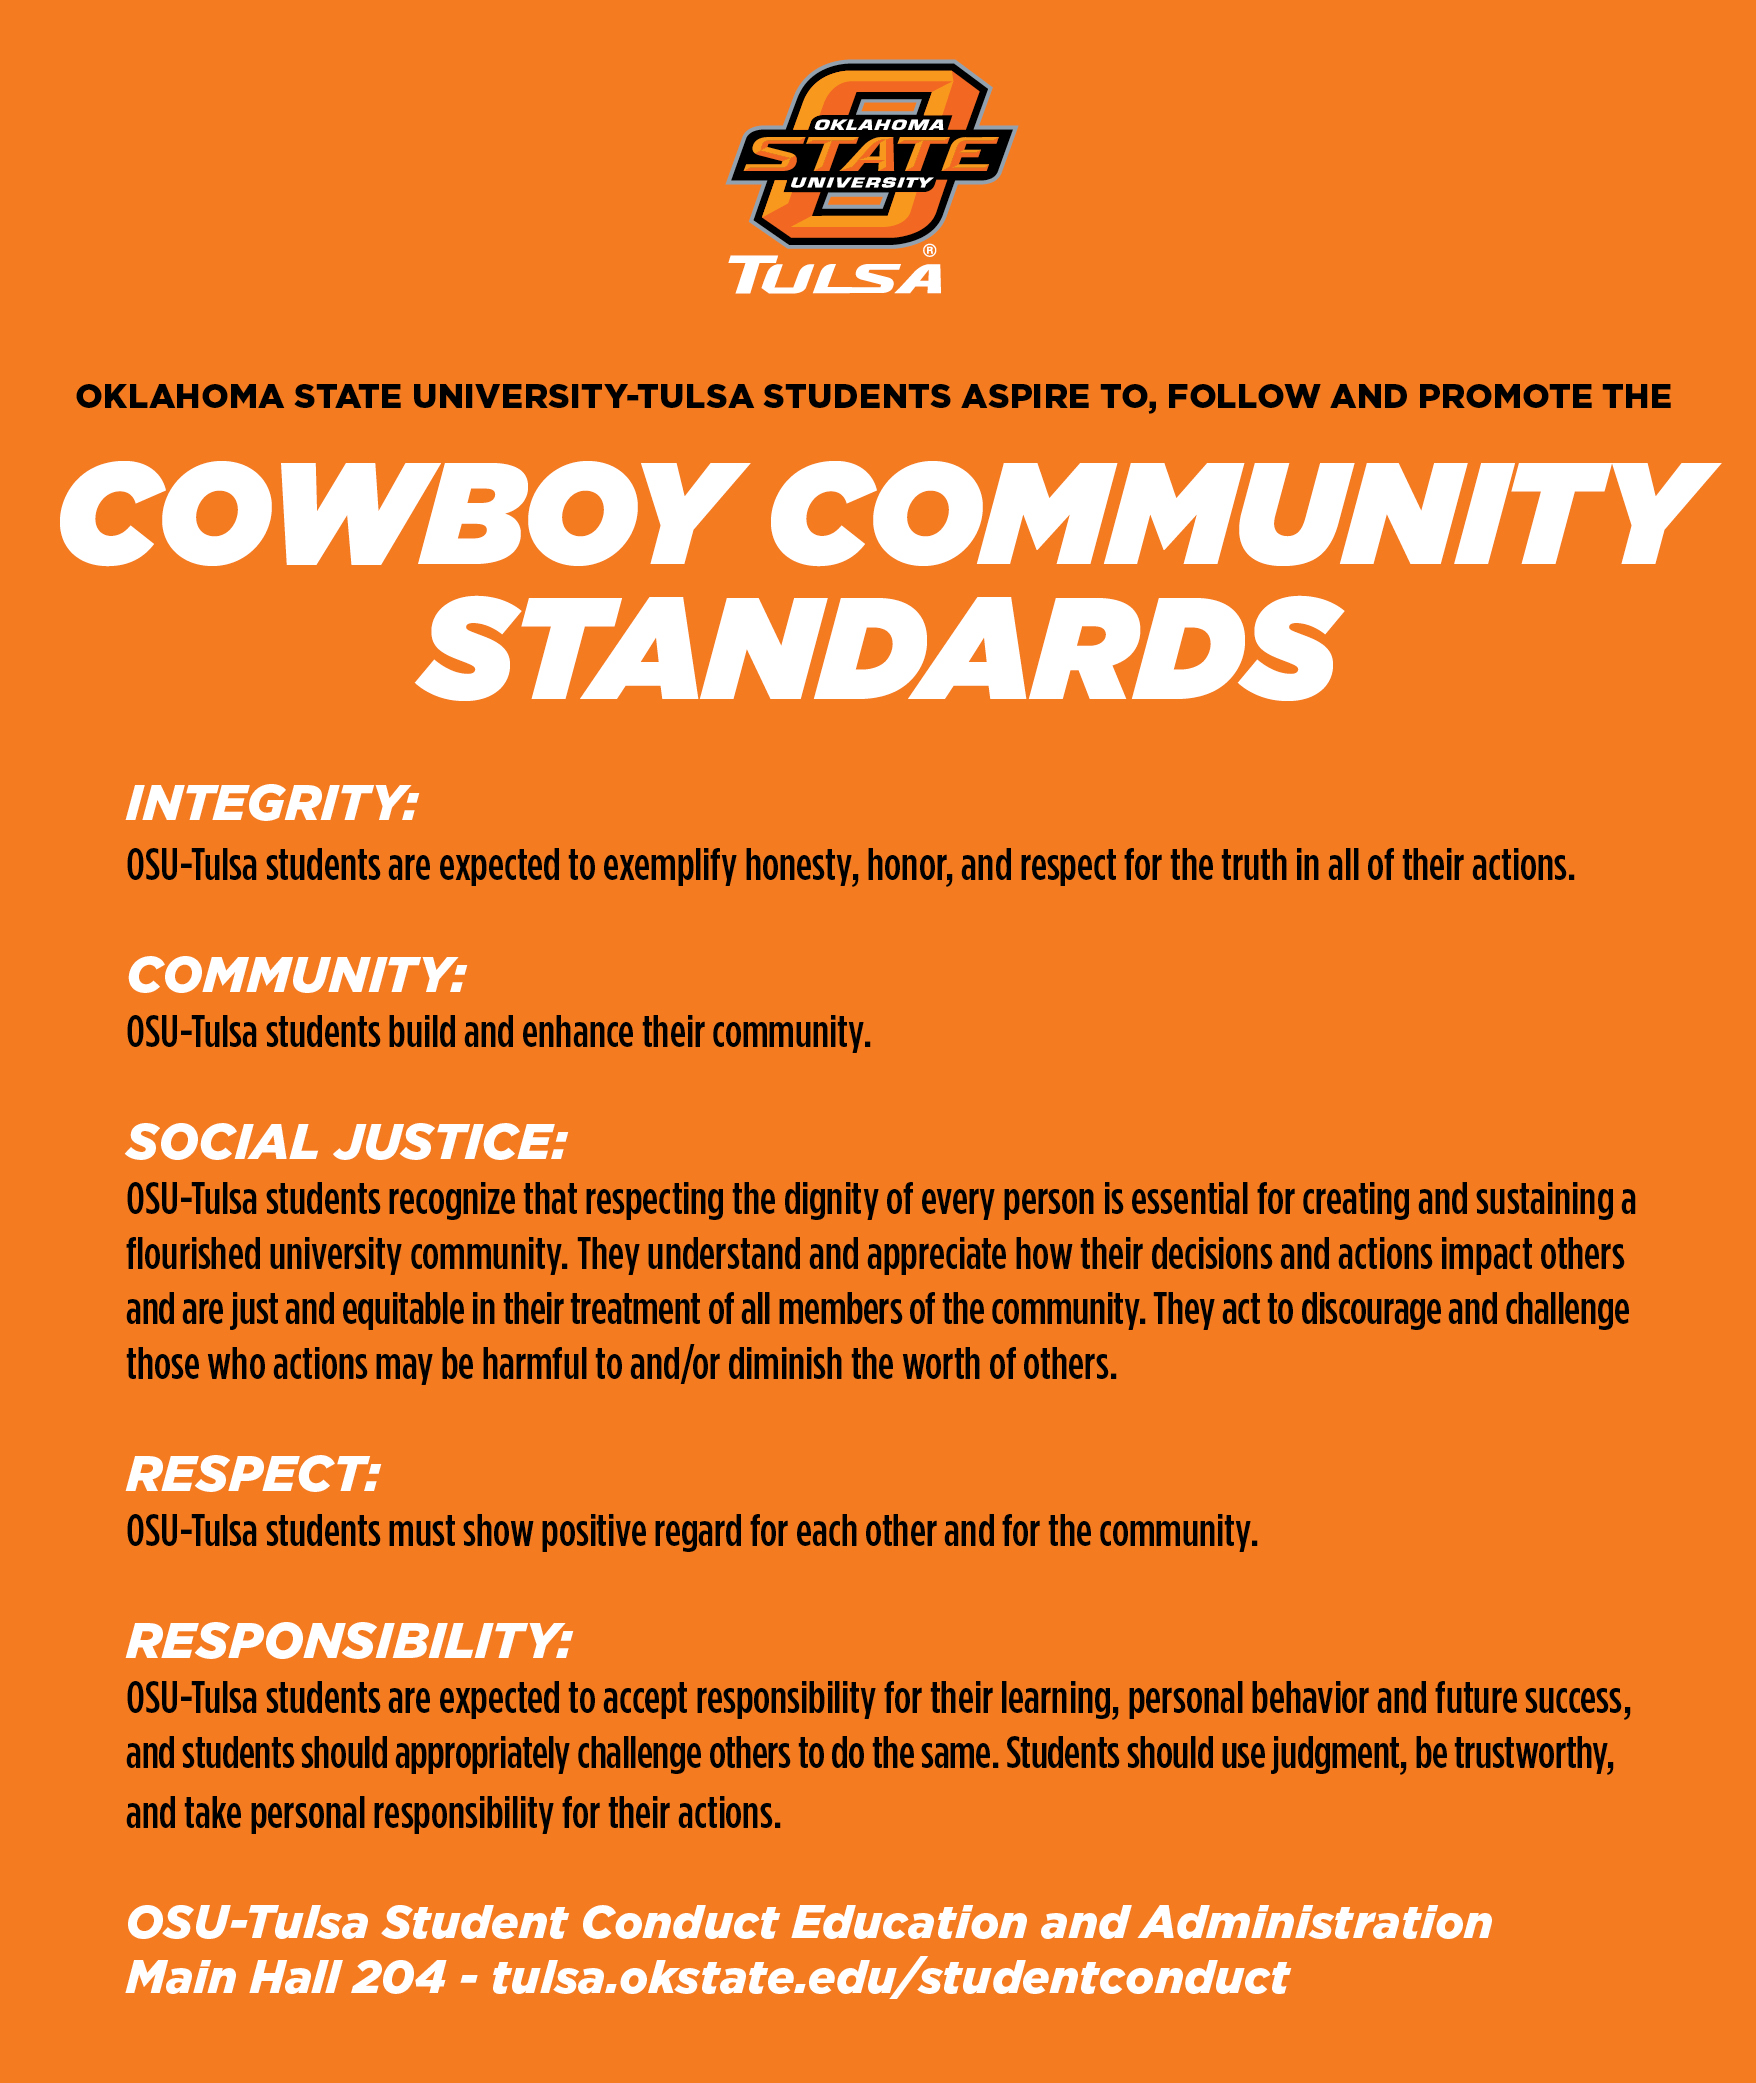 cowboy community standards graphic click for text